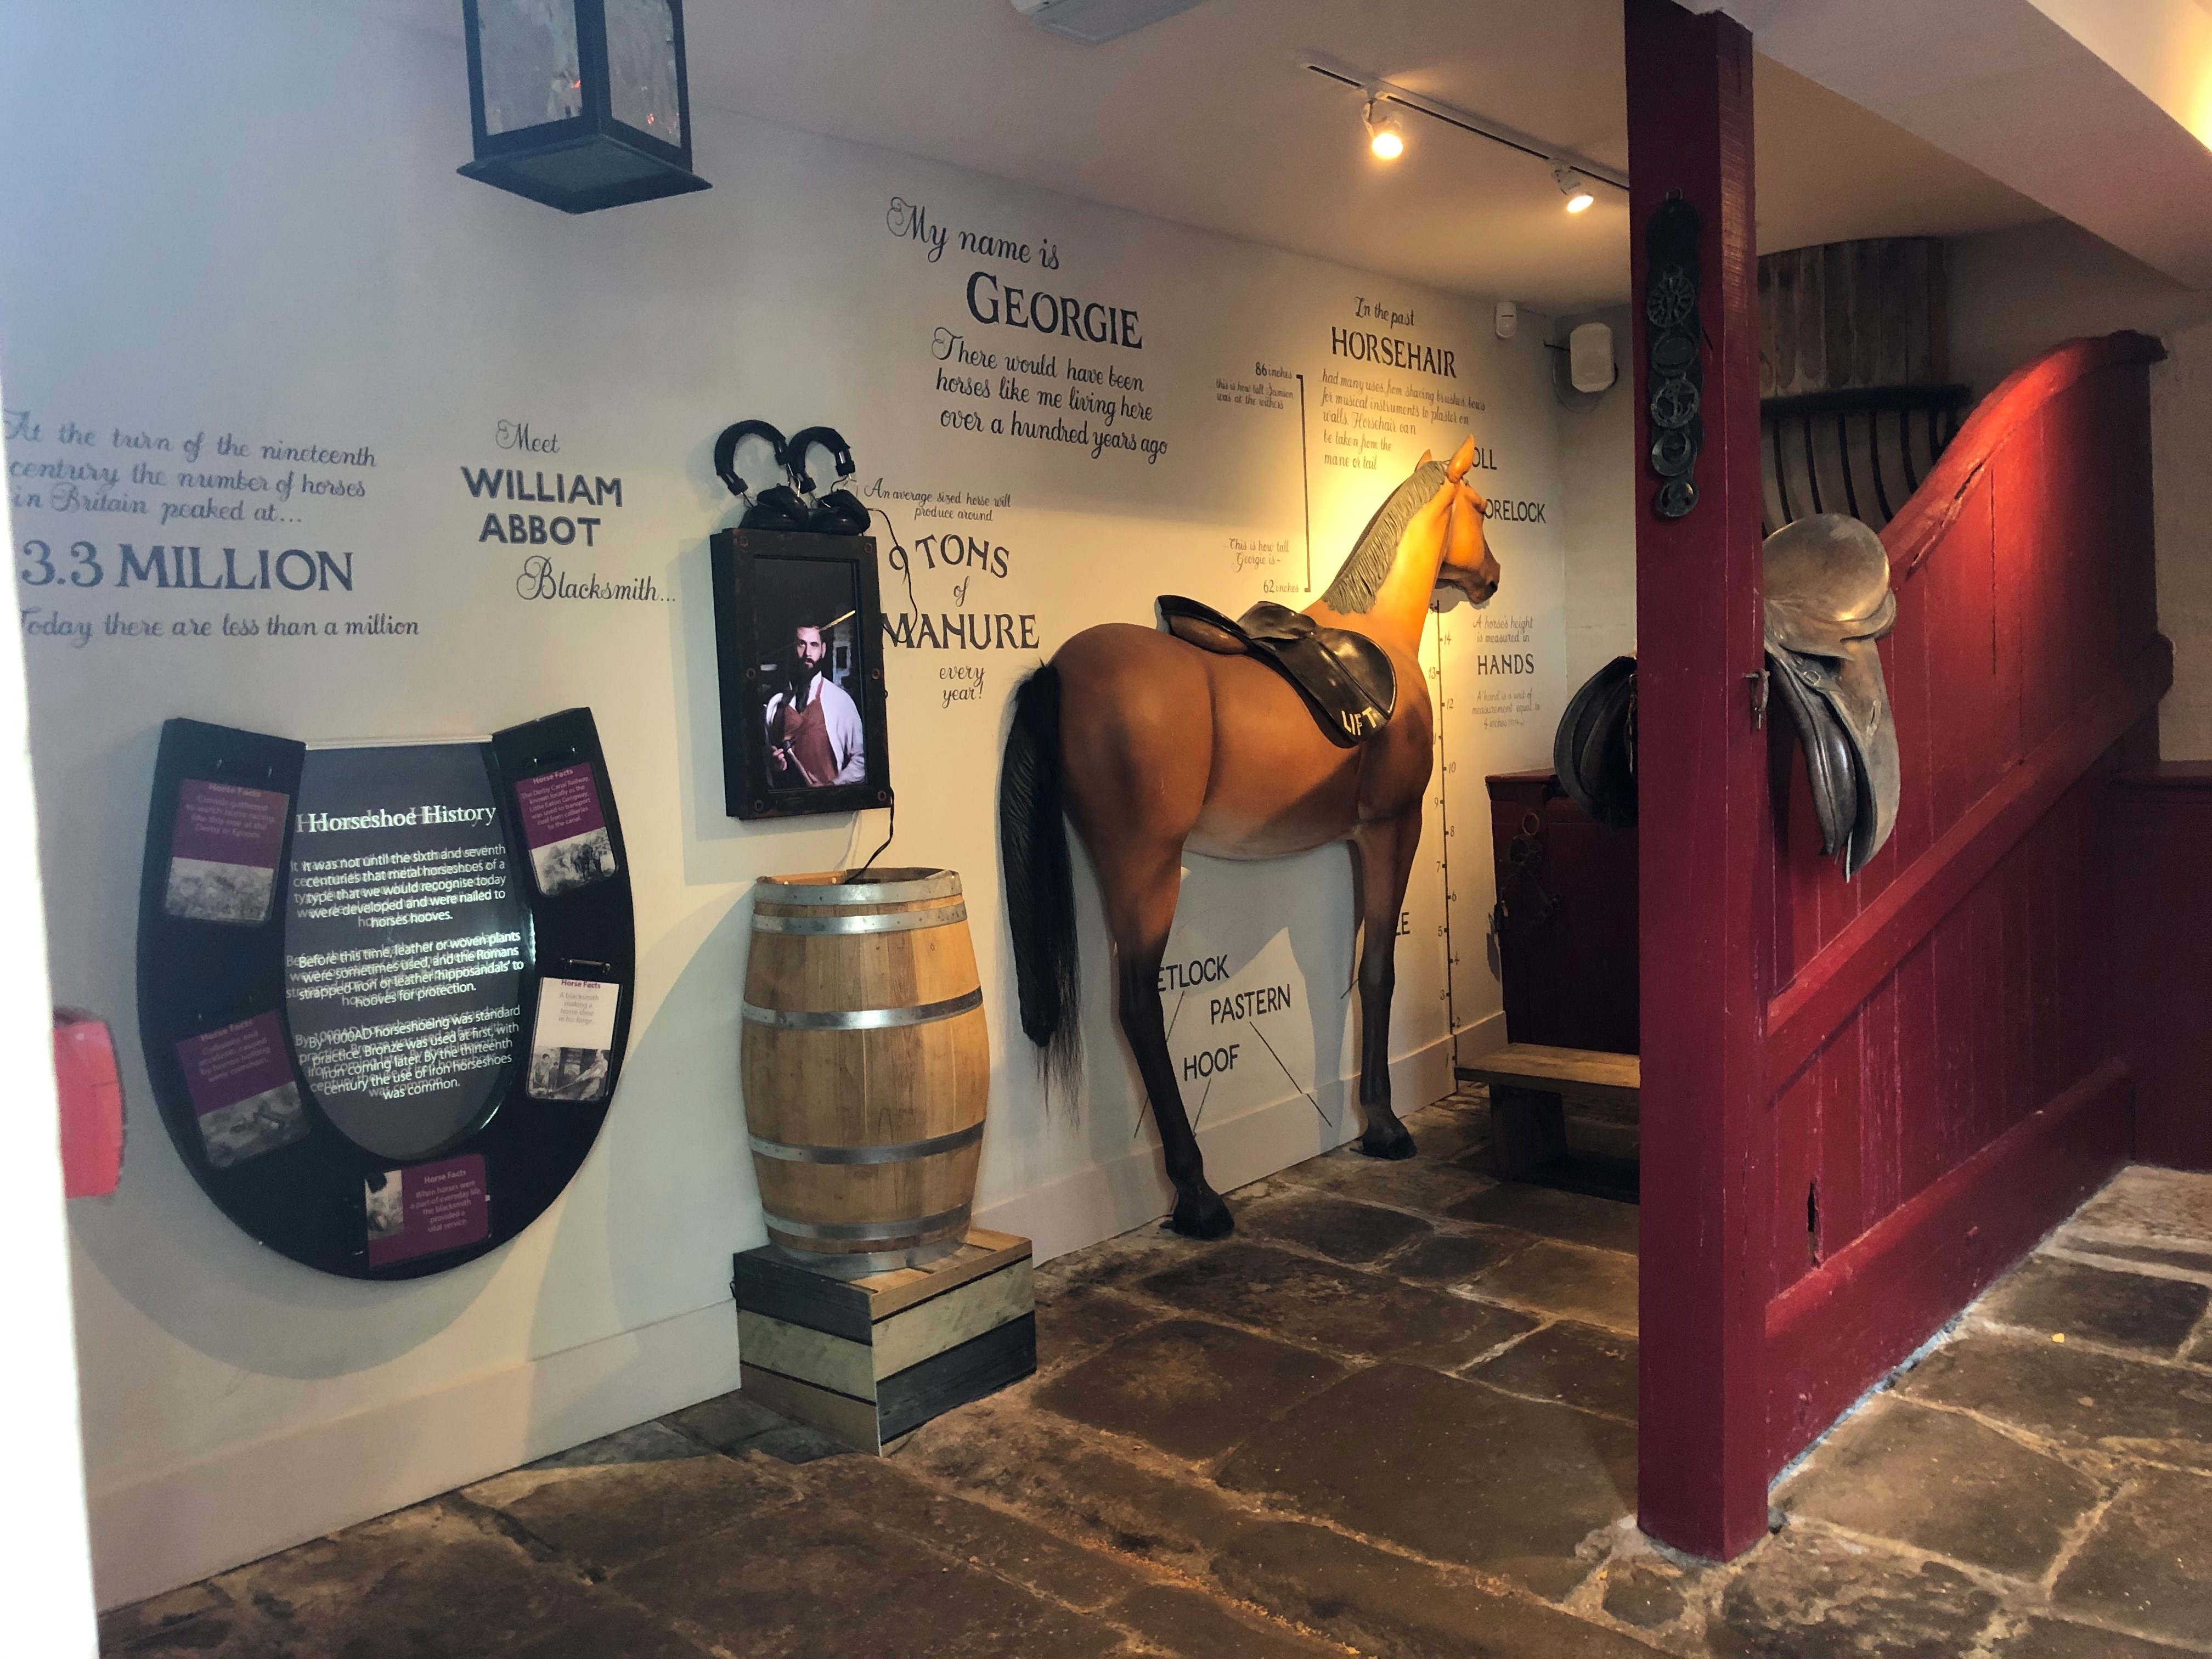 Stable interior with sculptural horse and interactives on wall